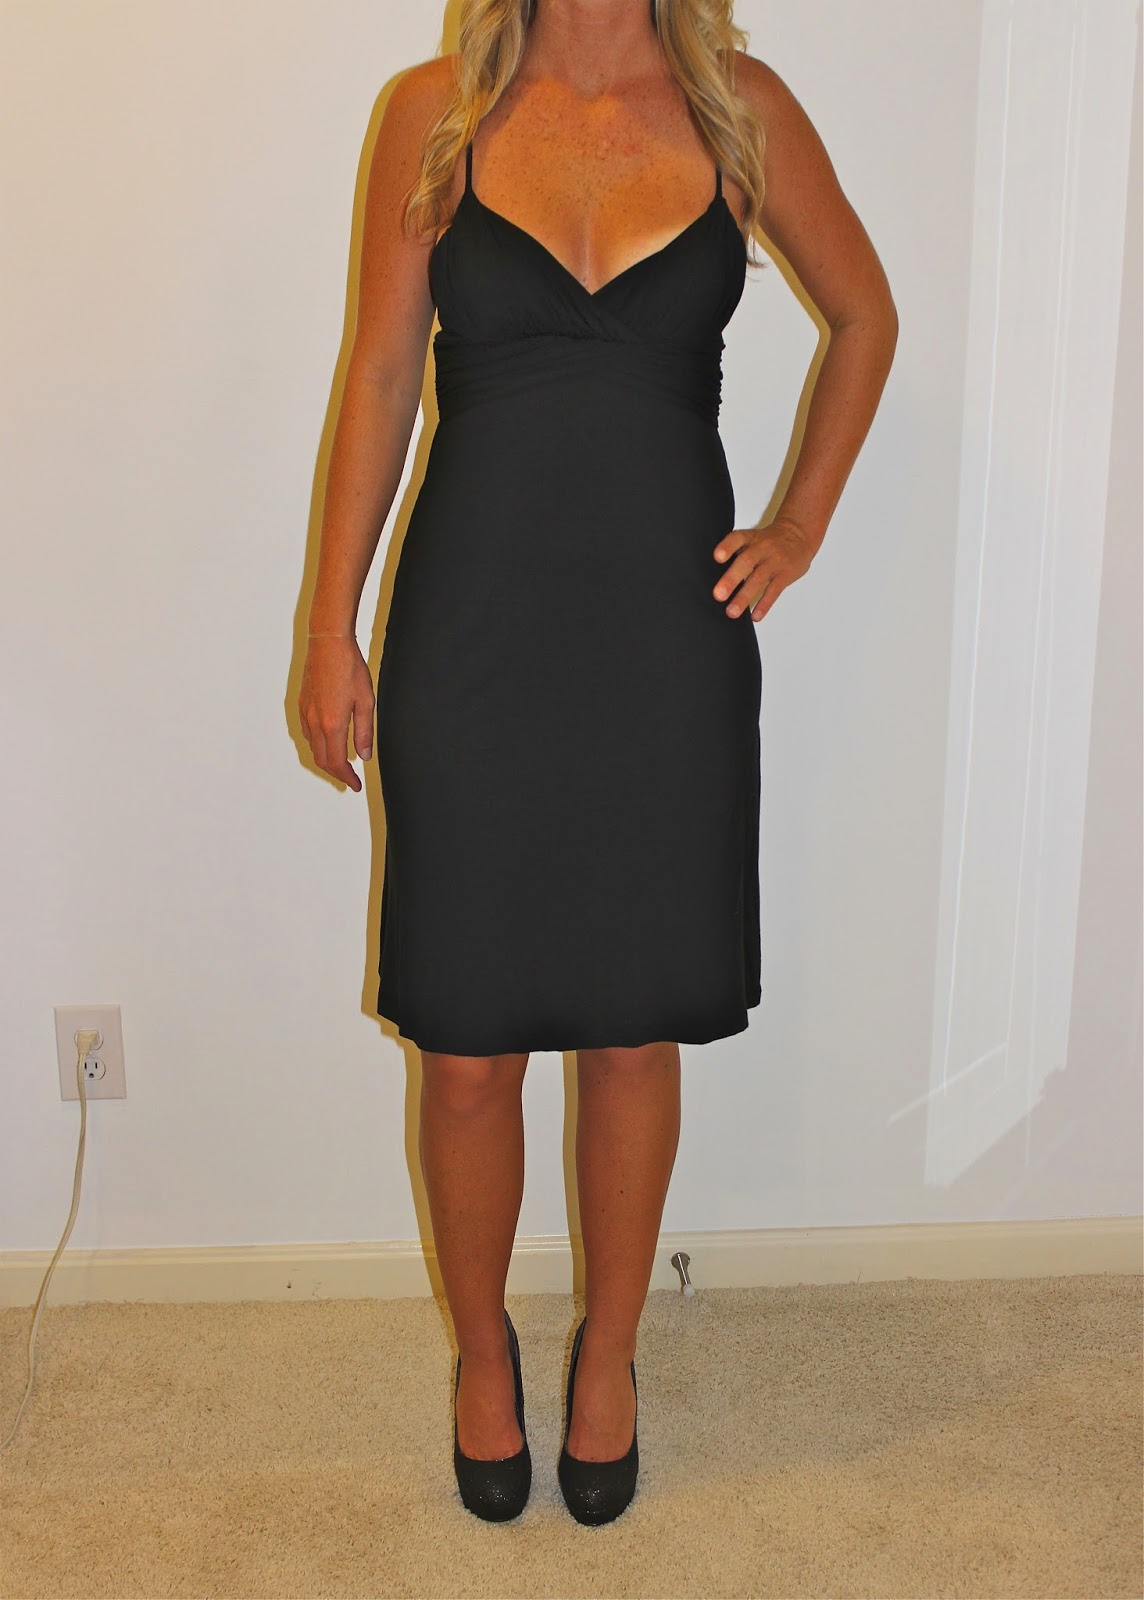 ebay little black dress